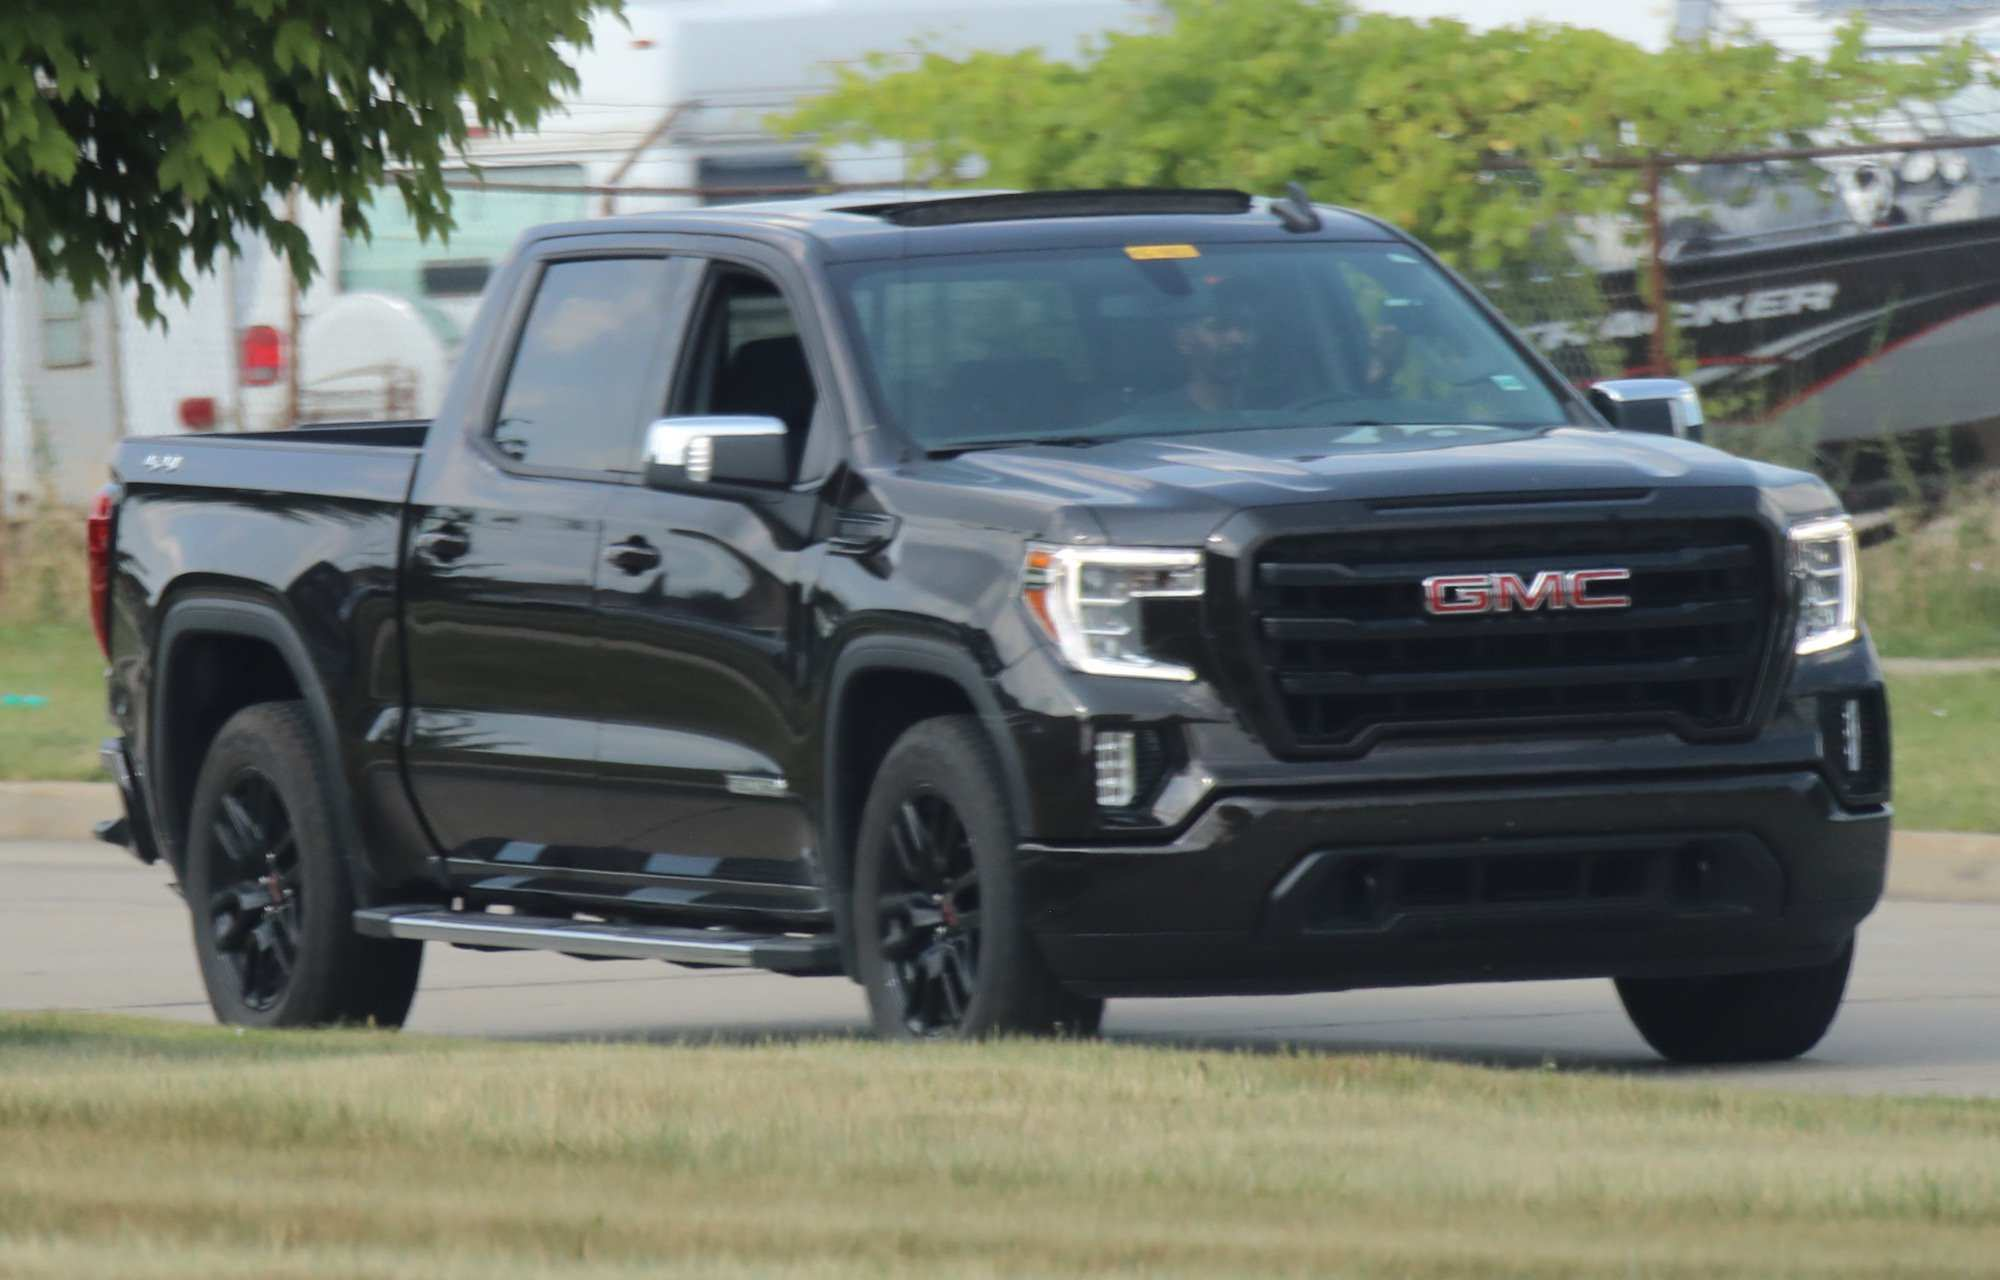 38 Concept of 2019 Gmc Hd Release Date Concept by 2019 Gmc Hd Release Date